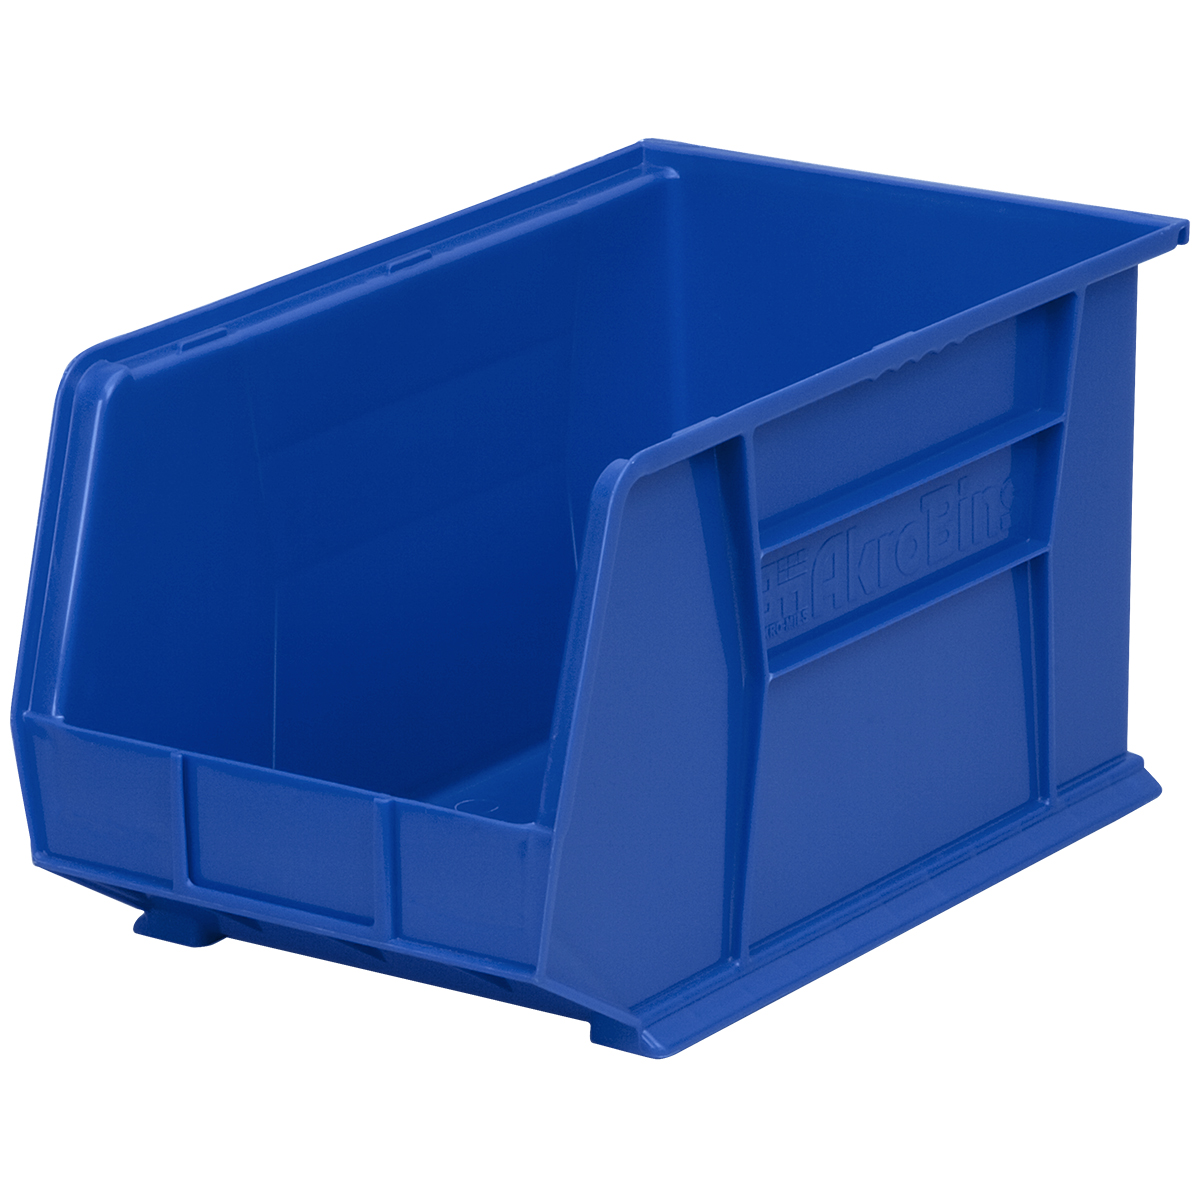 AkroBin 18 x 11 x 10, Blue (30260BLUE).  This item sold in carton quantities of 6.